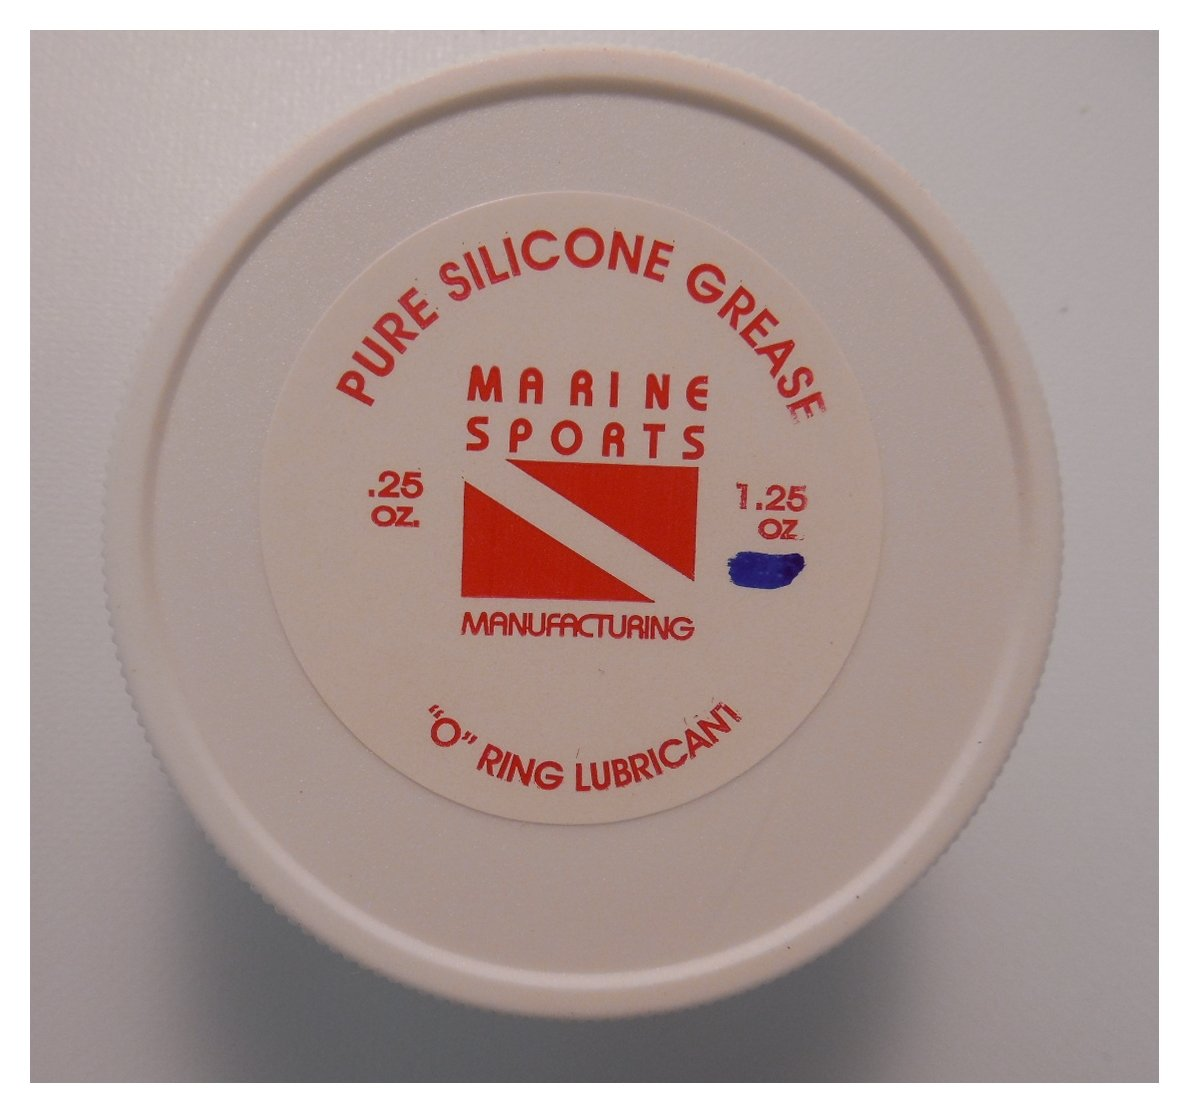 Marine Sports Manufacturing Silicone Grease 1.25 oz by Marine Sports Manufacturing